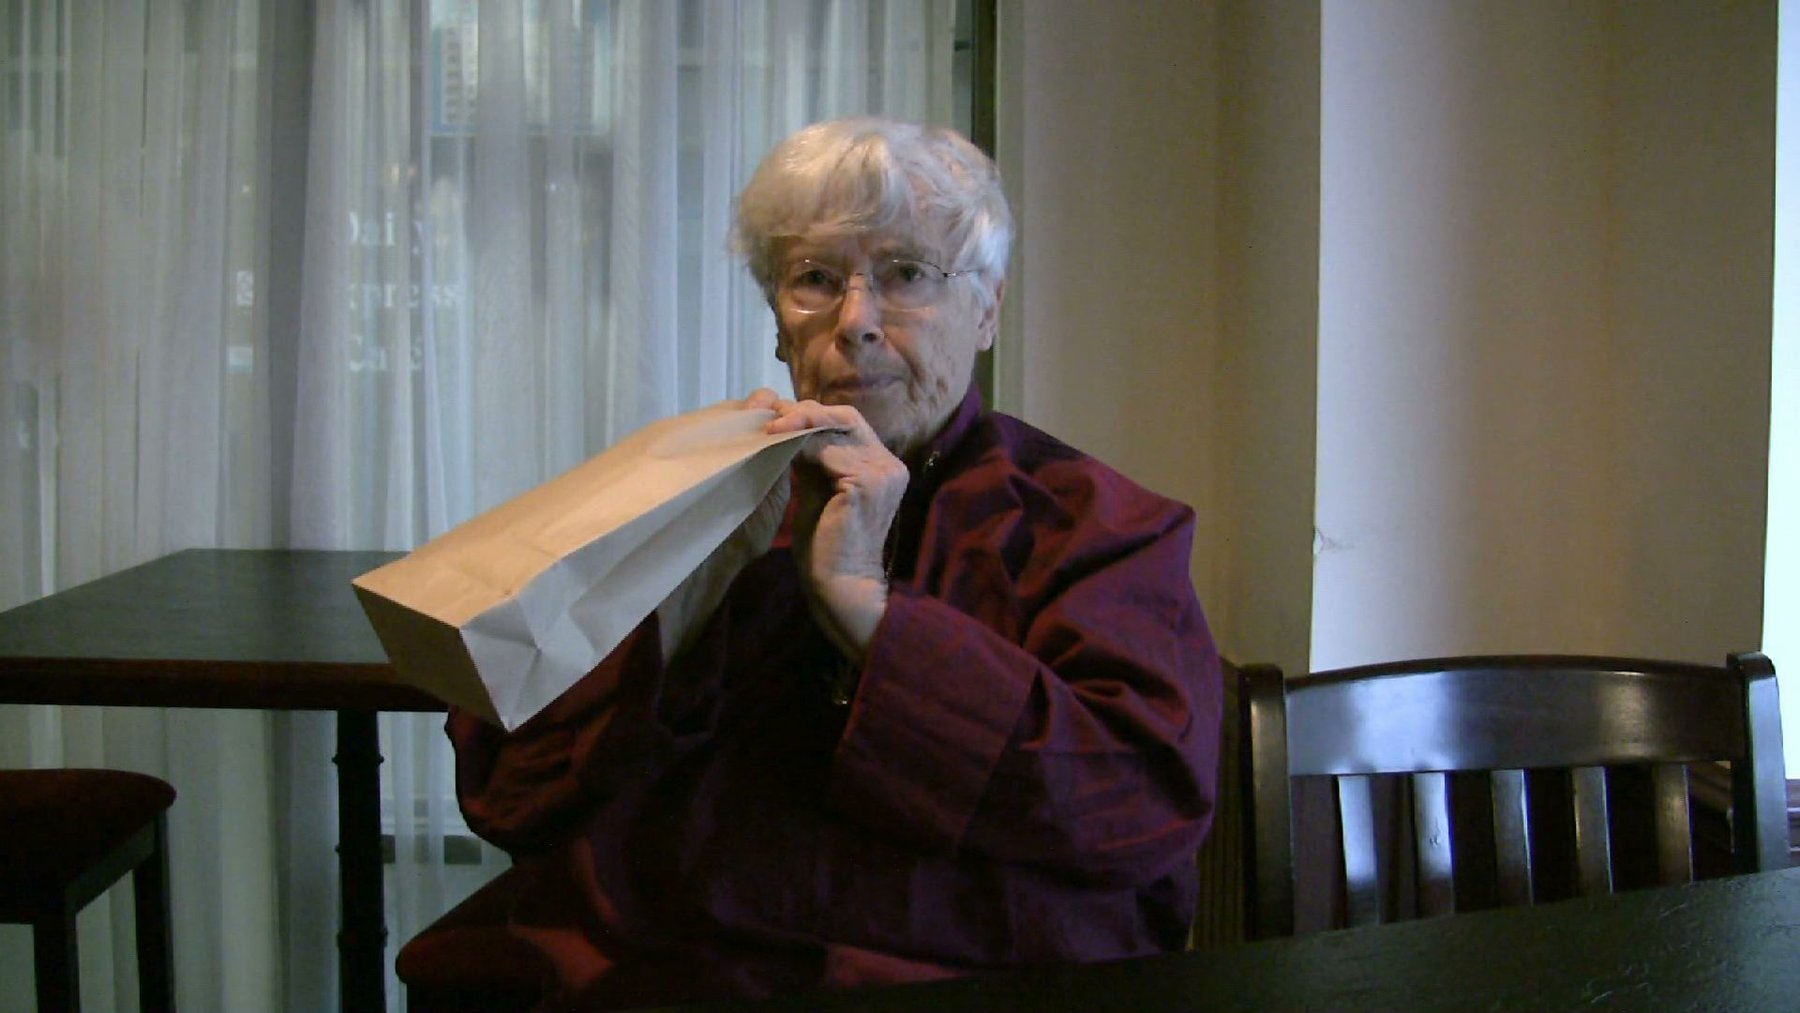 An elderly Caucasian woman with white hair holds a paper bag to her face, Lozano-Hemmer Soundtracks